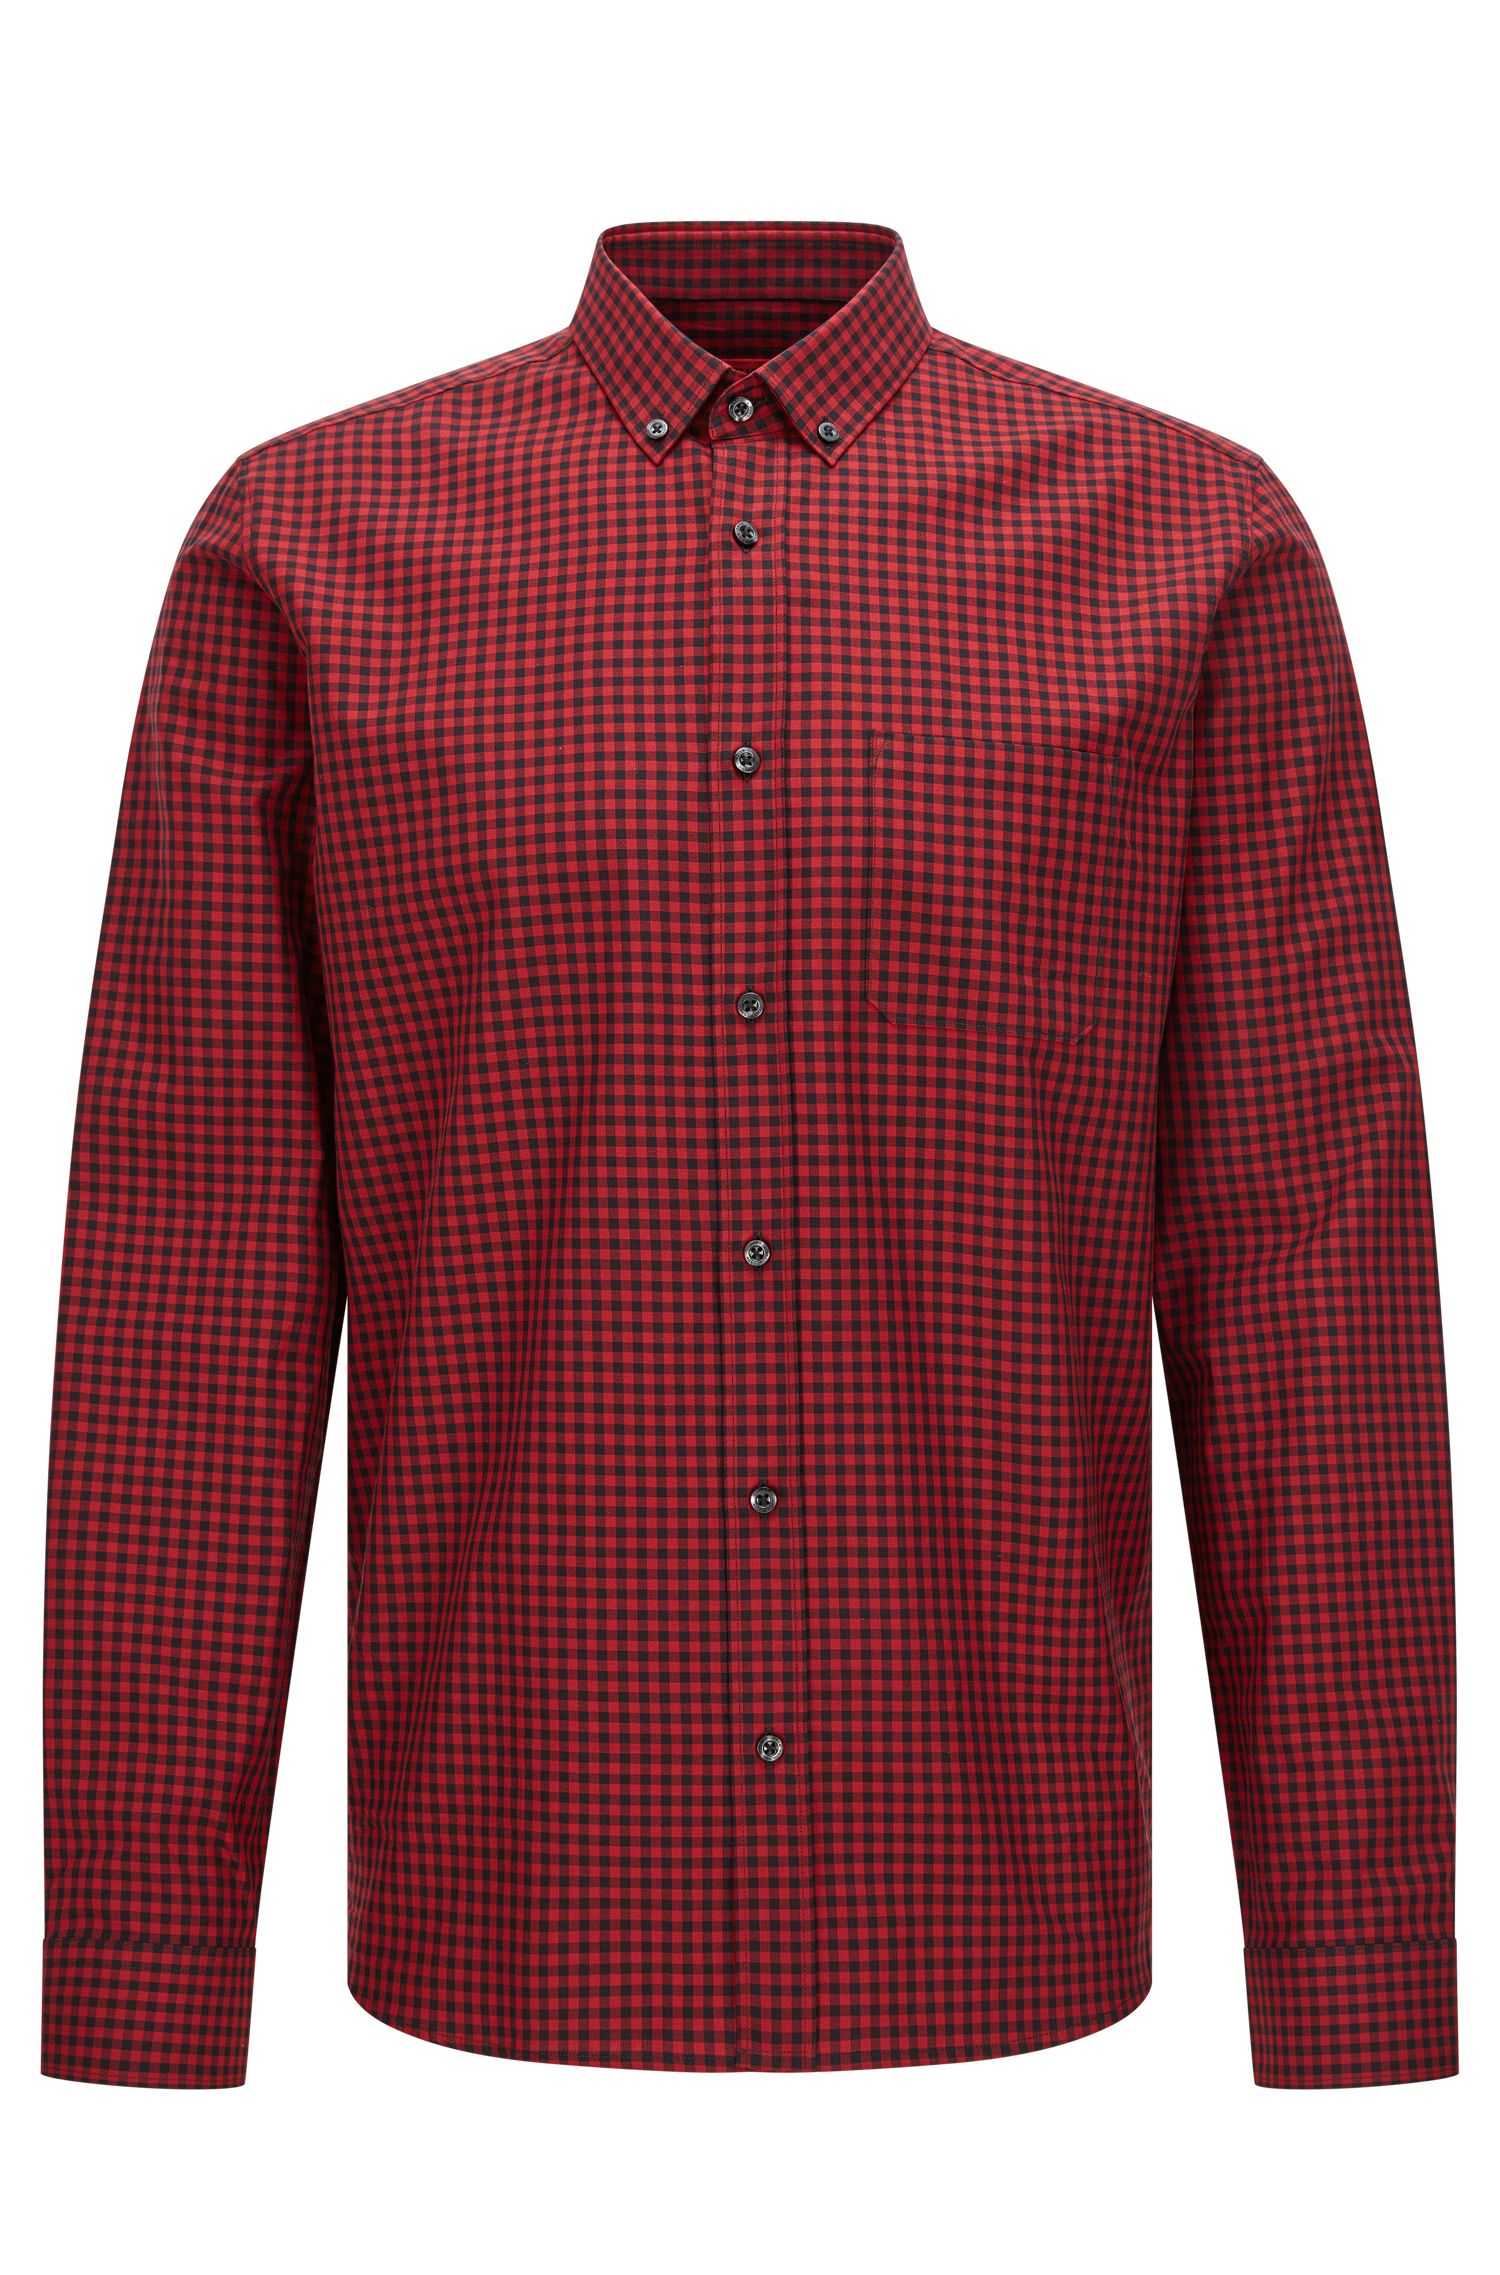 'Emingway' | Relaxed Fit, Gingham Cotton Button Down Shirt